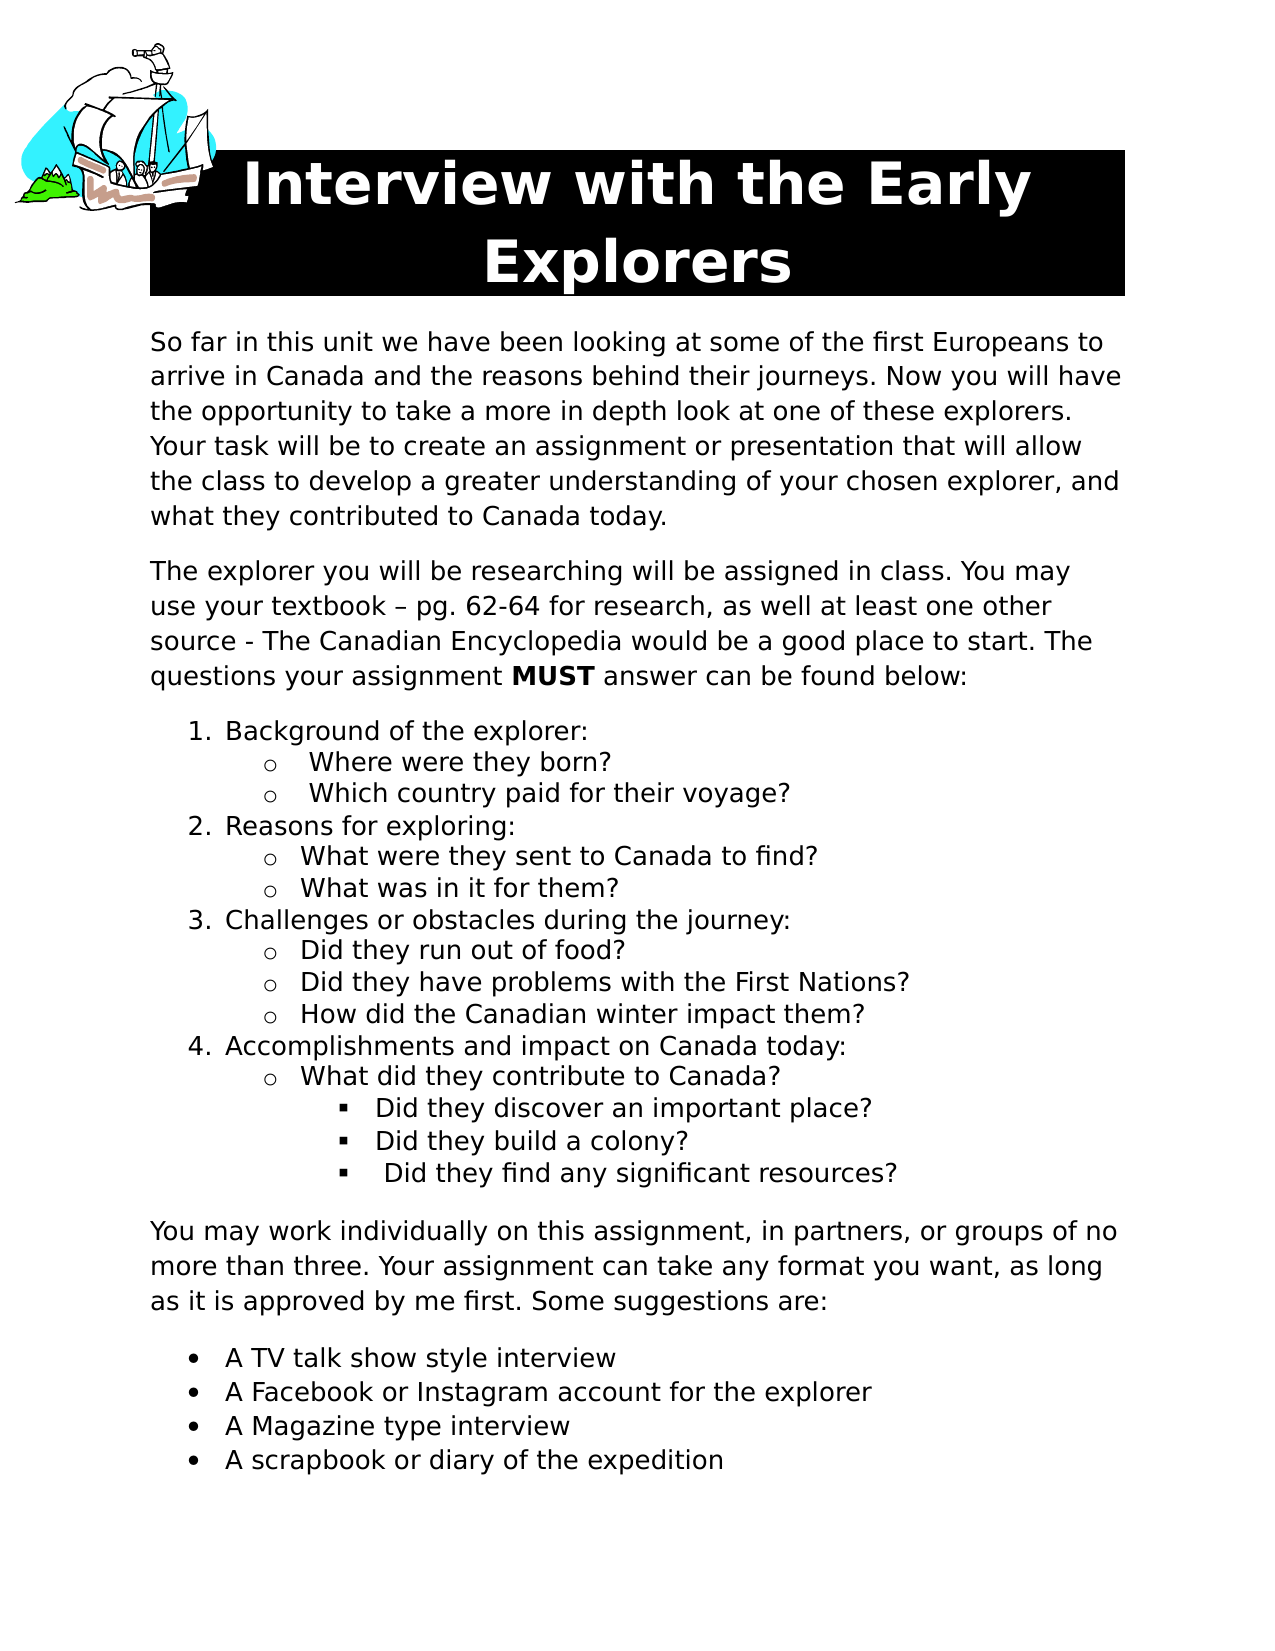 Interview With The Early Explorers Assignment Resource